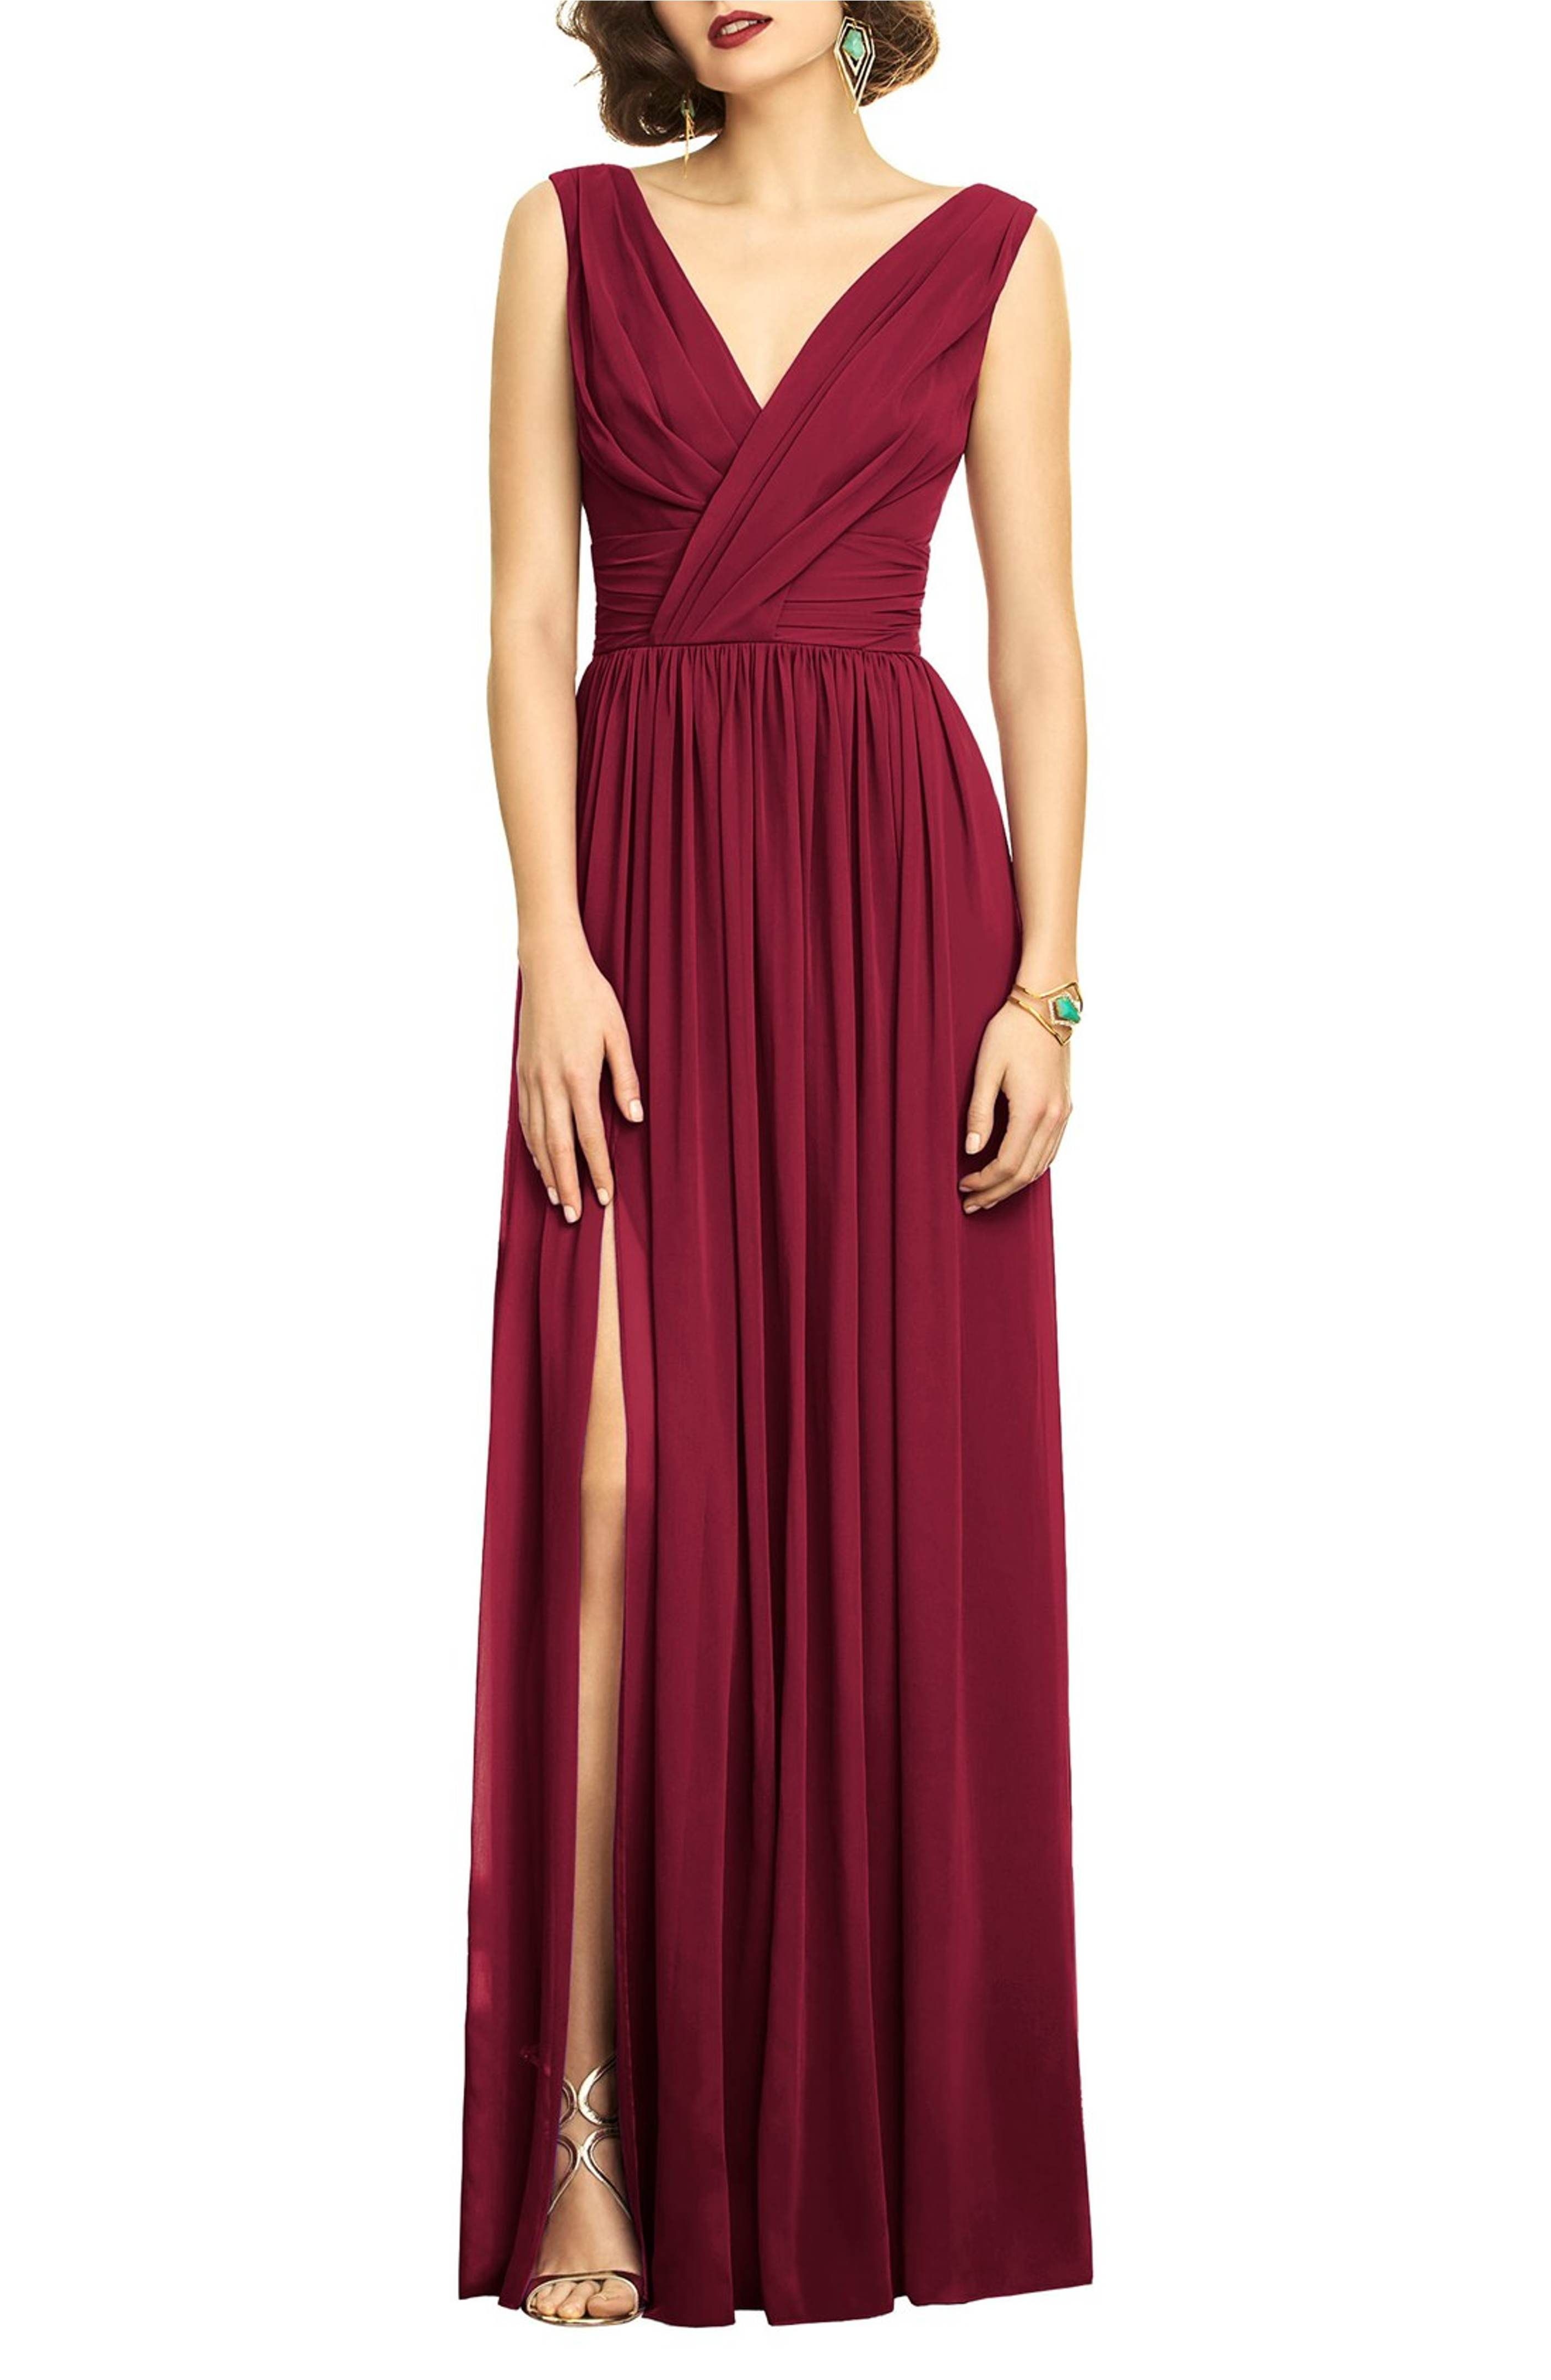 Surplice Ruched Chiffon Gown | Chiffon gown, Gowns and Hollywood glamour